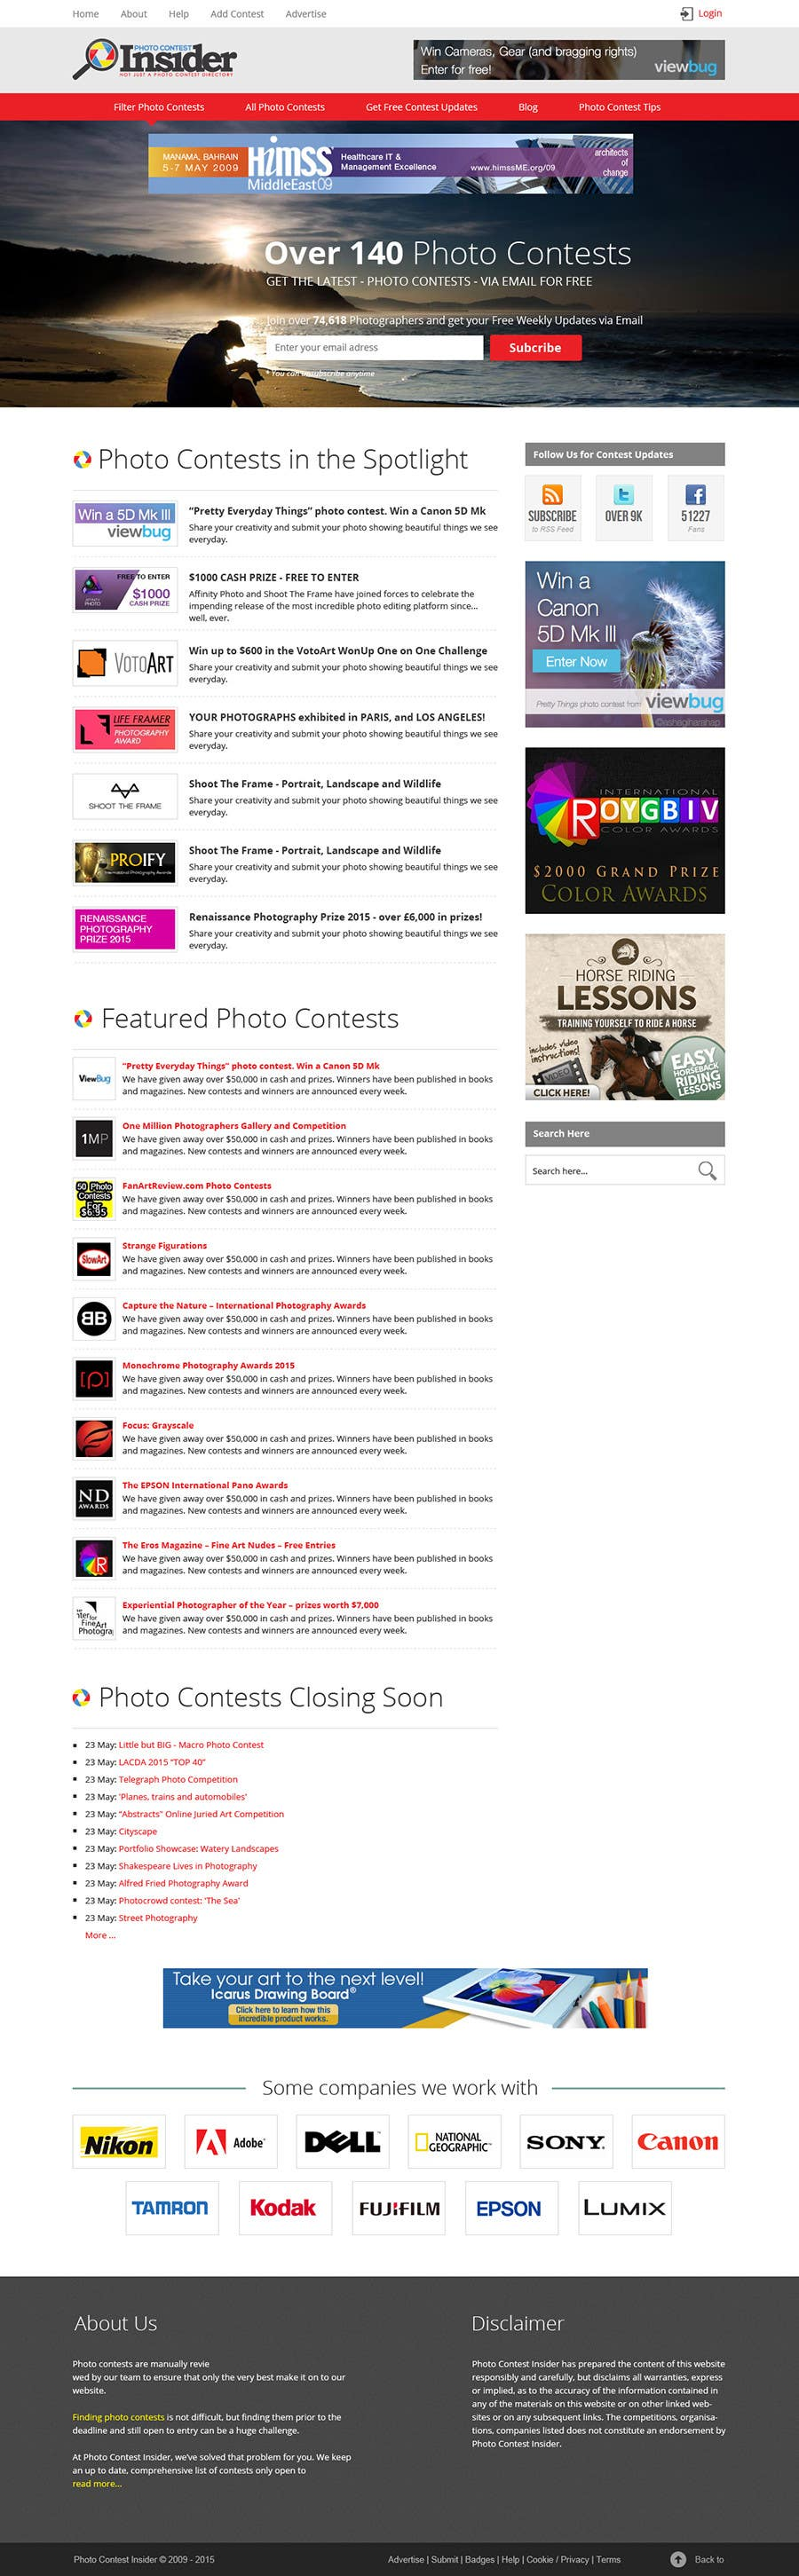 Penyertaan Peraduan #43 untuk Design a Homepage mockup for our existing website WITHOUT changing the layout [PSD ONLY]